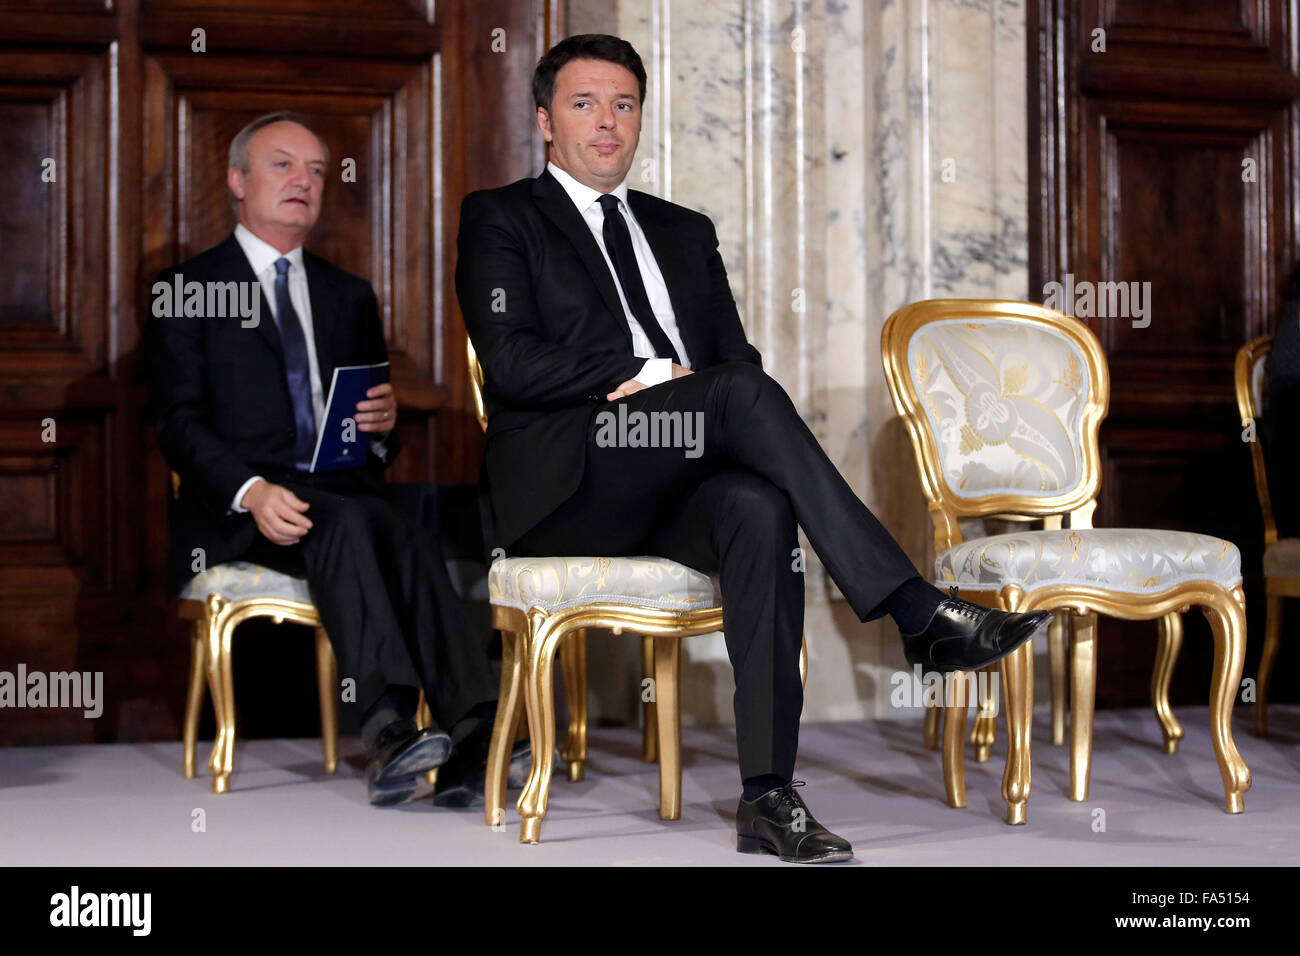 Rome, Italy. 21st December, 2015. Matteo Renzi Rome 21ht December 2015 Quirinale, Cerimony for End of Year wishes - Stock Image